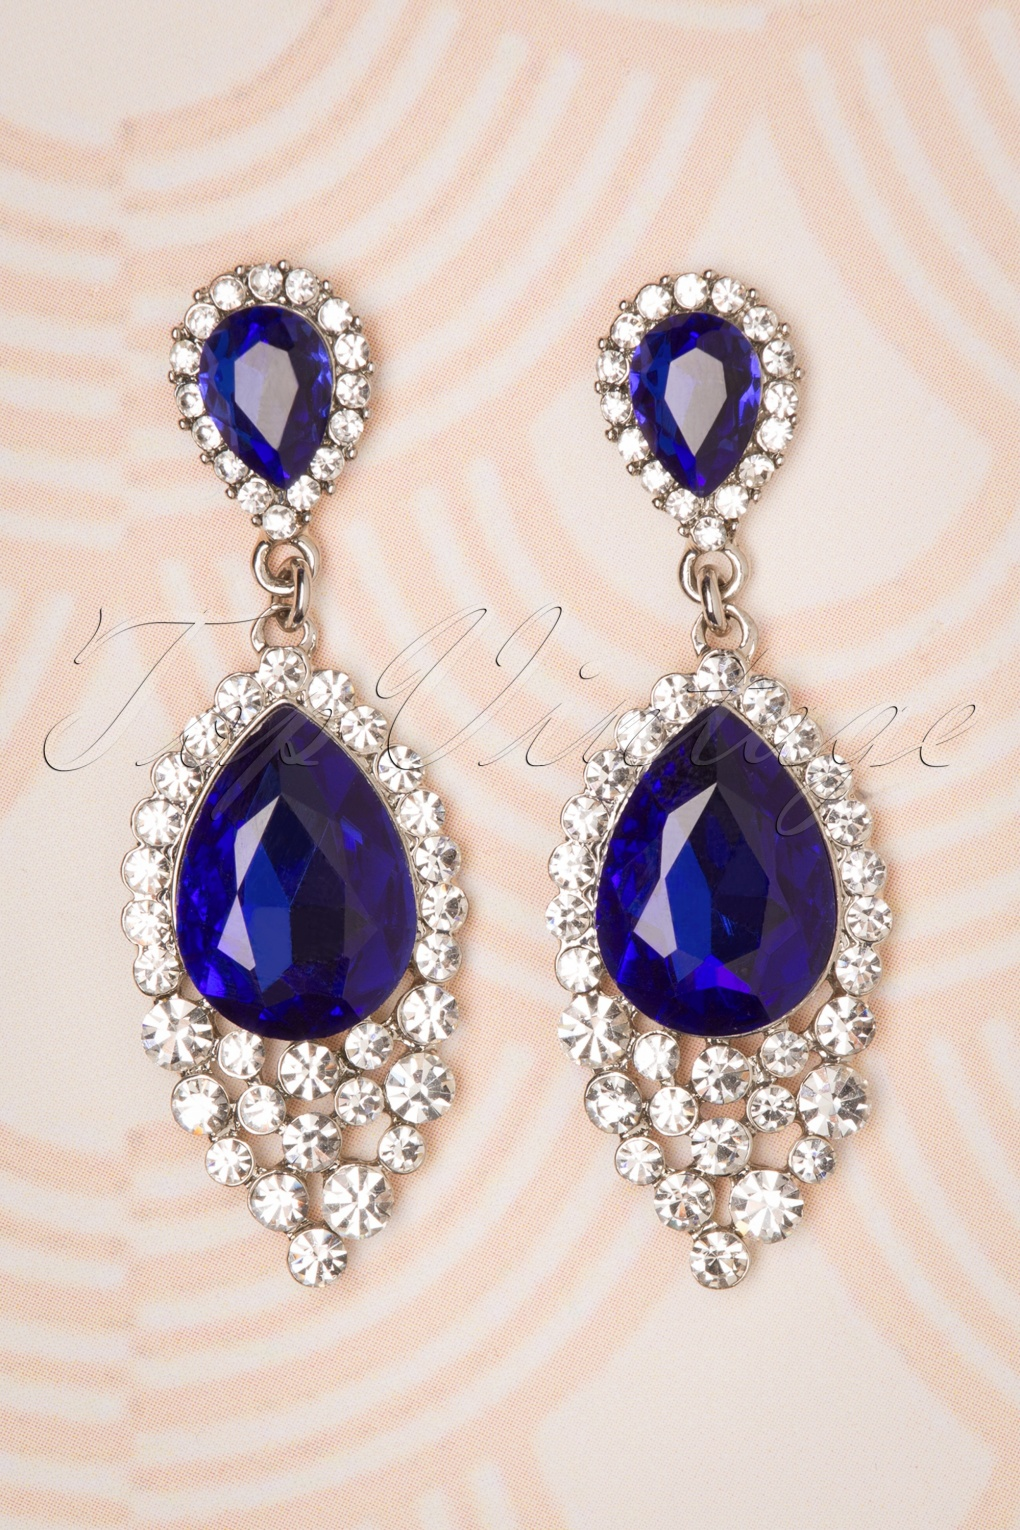 1950s Fashion History: Women's Clothing 50s Sapphire Jewel Drop Earrings in Silver £11.79 AT vintagedancer.com